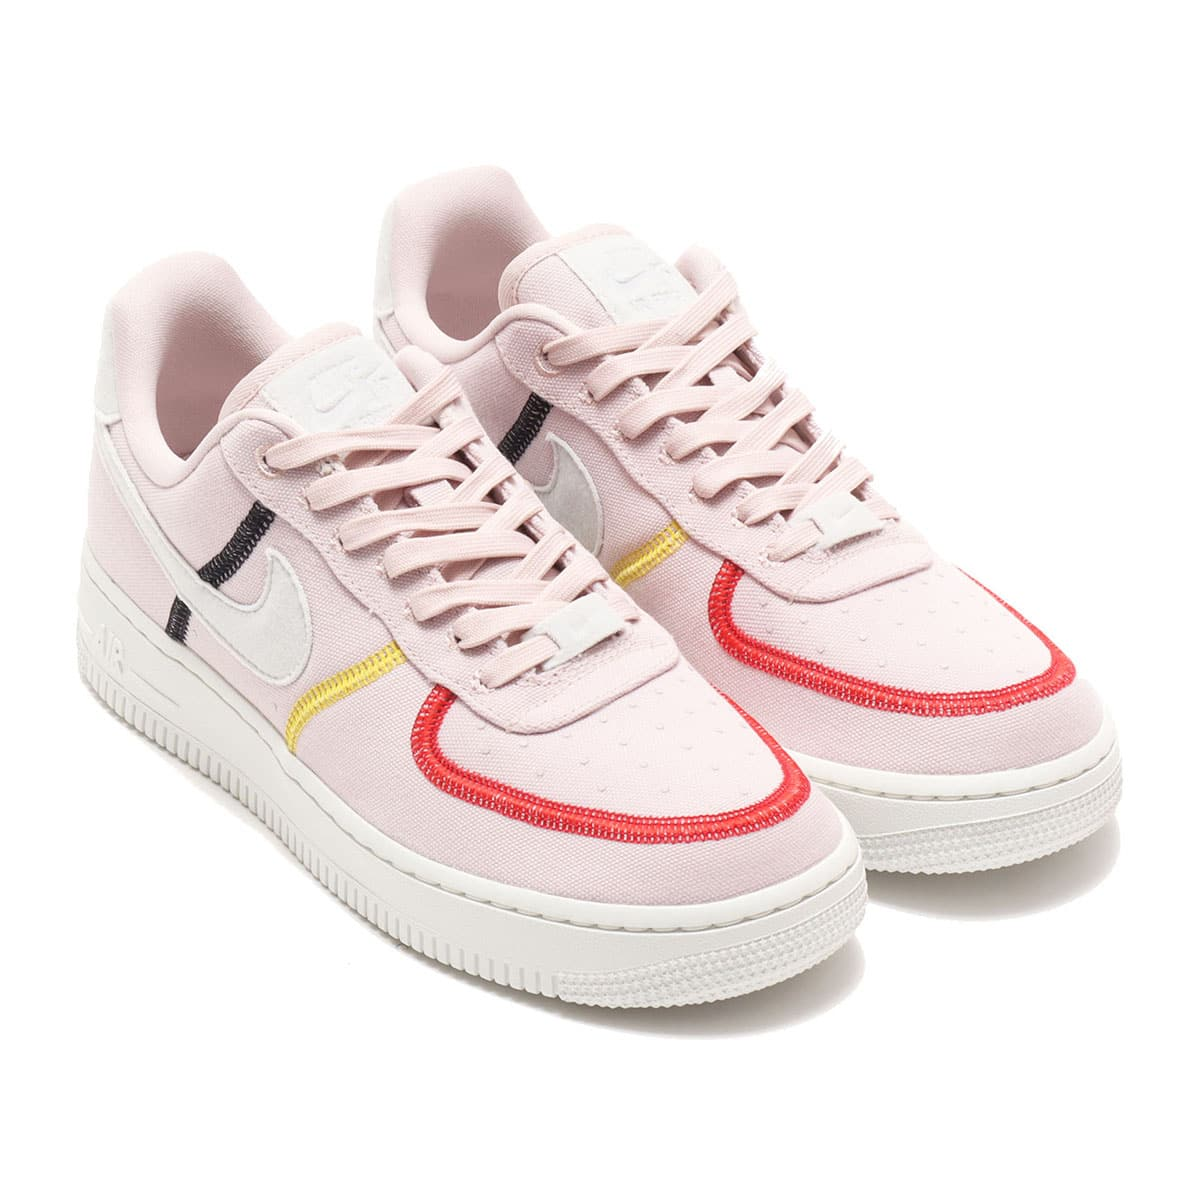 NIKE WMNS AIR FORCE 1 '07 LX SILT RED/PHOTON DUST-BRIGHT CITRON 20FA-I_photo_large